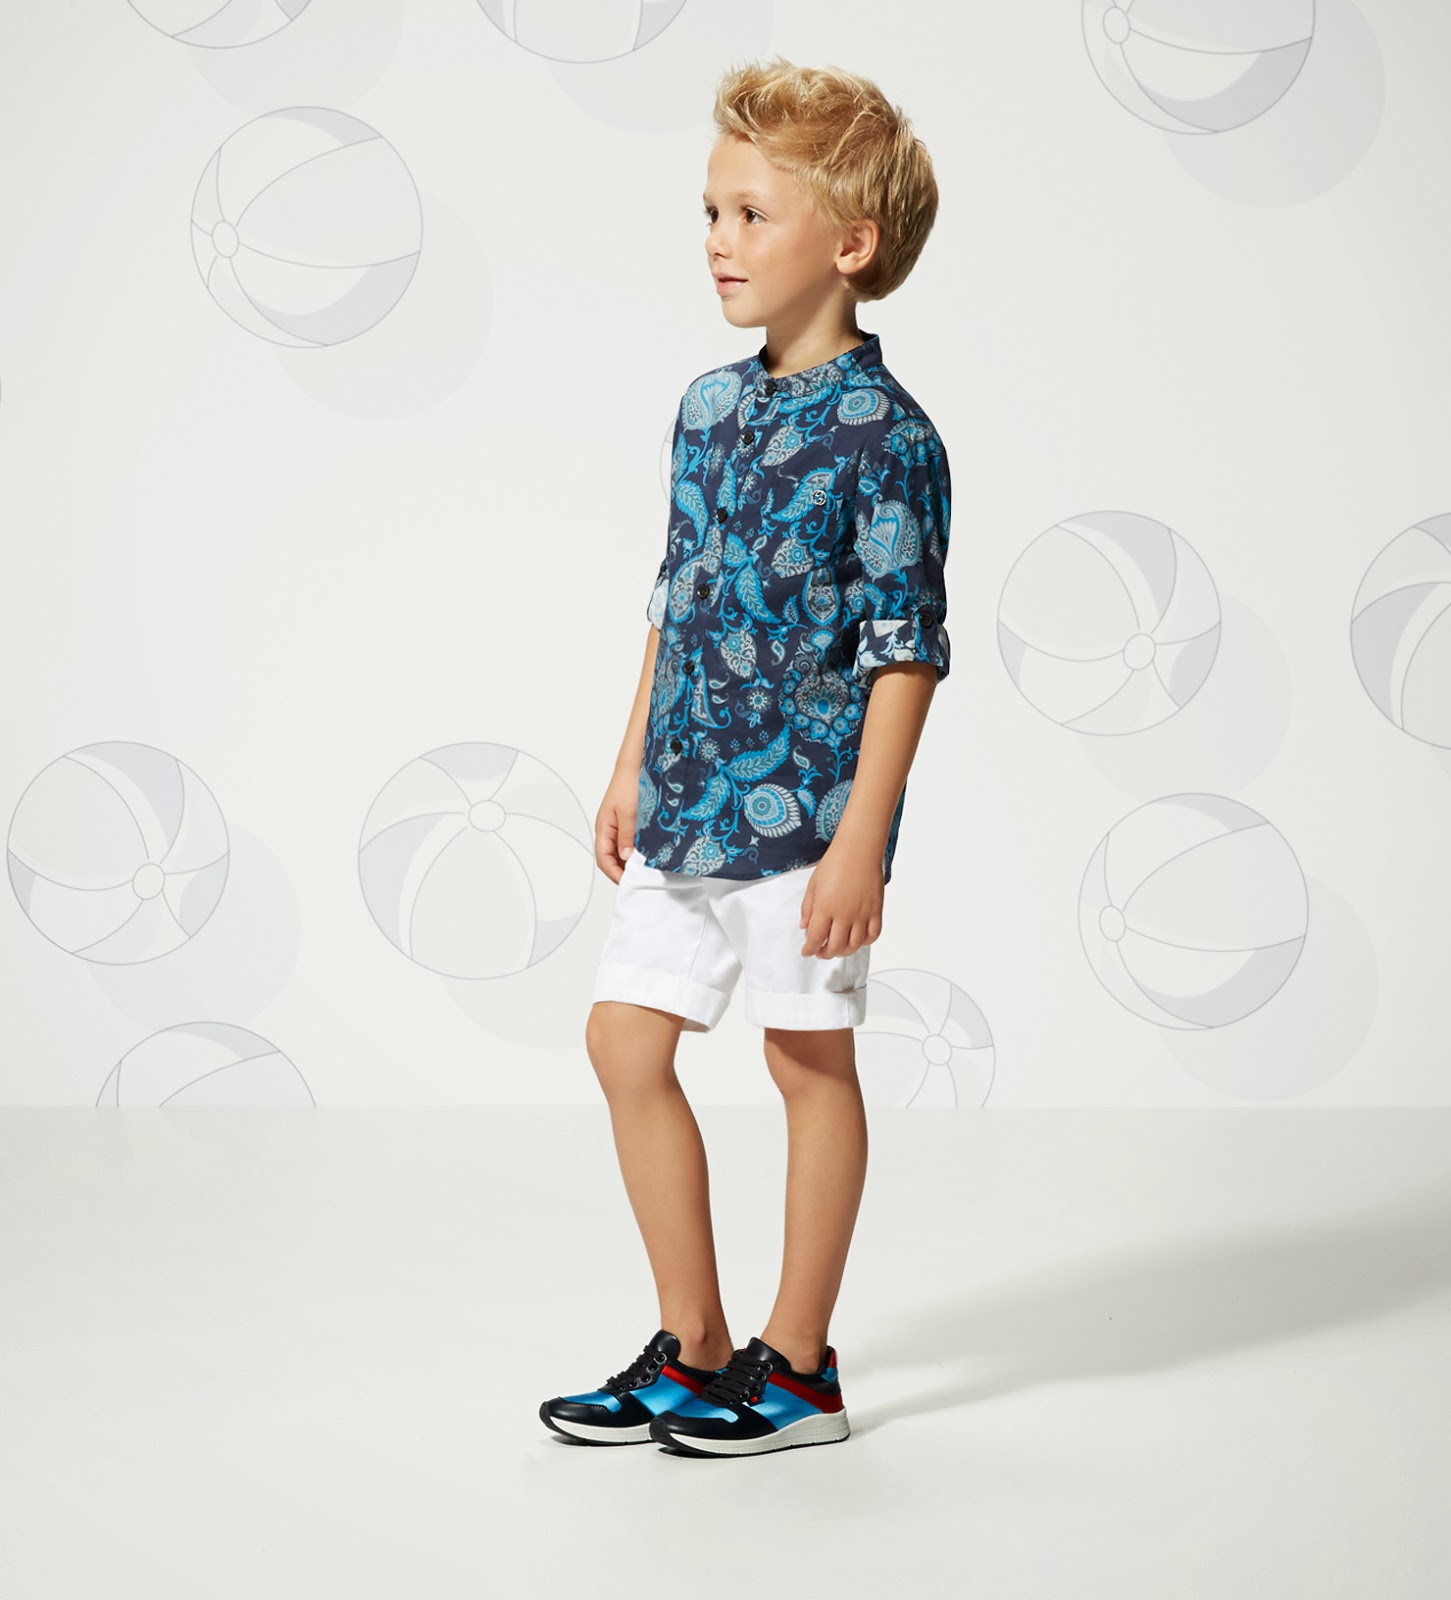 ... kid dit mode gucci garcon boy enfant printemps eCC81teCC81 2014 spring  summer fashion moda 7b8803f7bb2